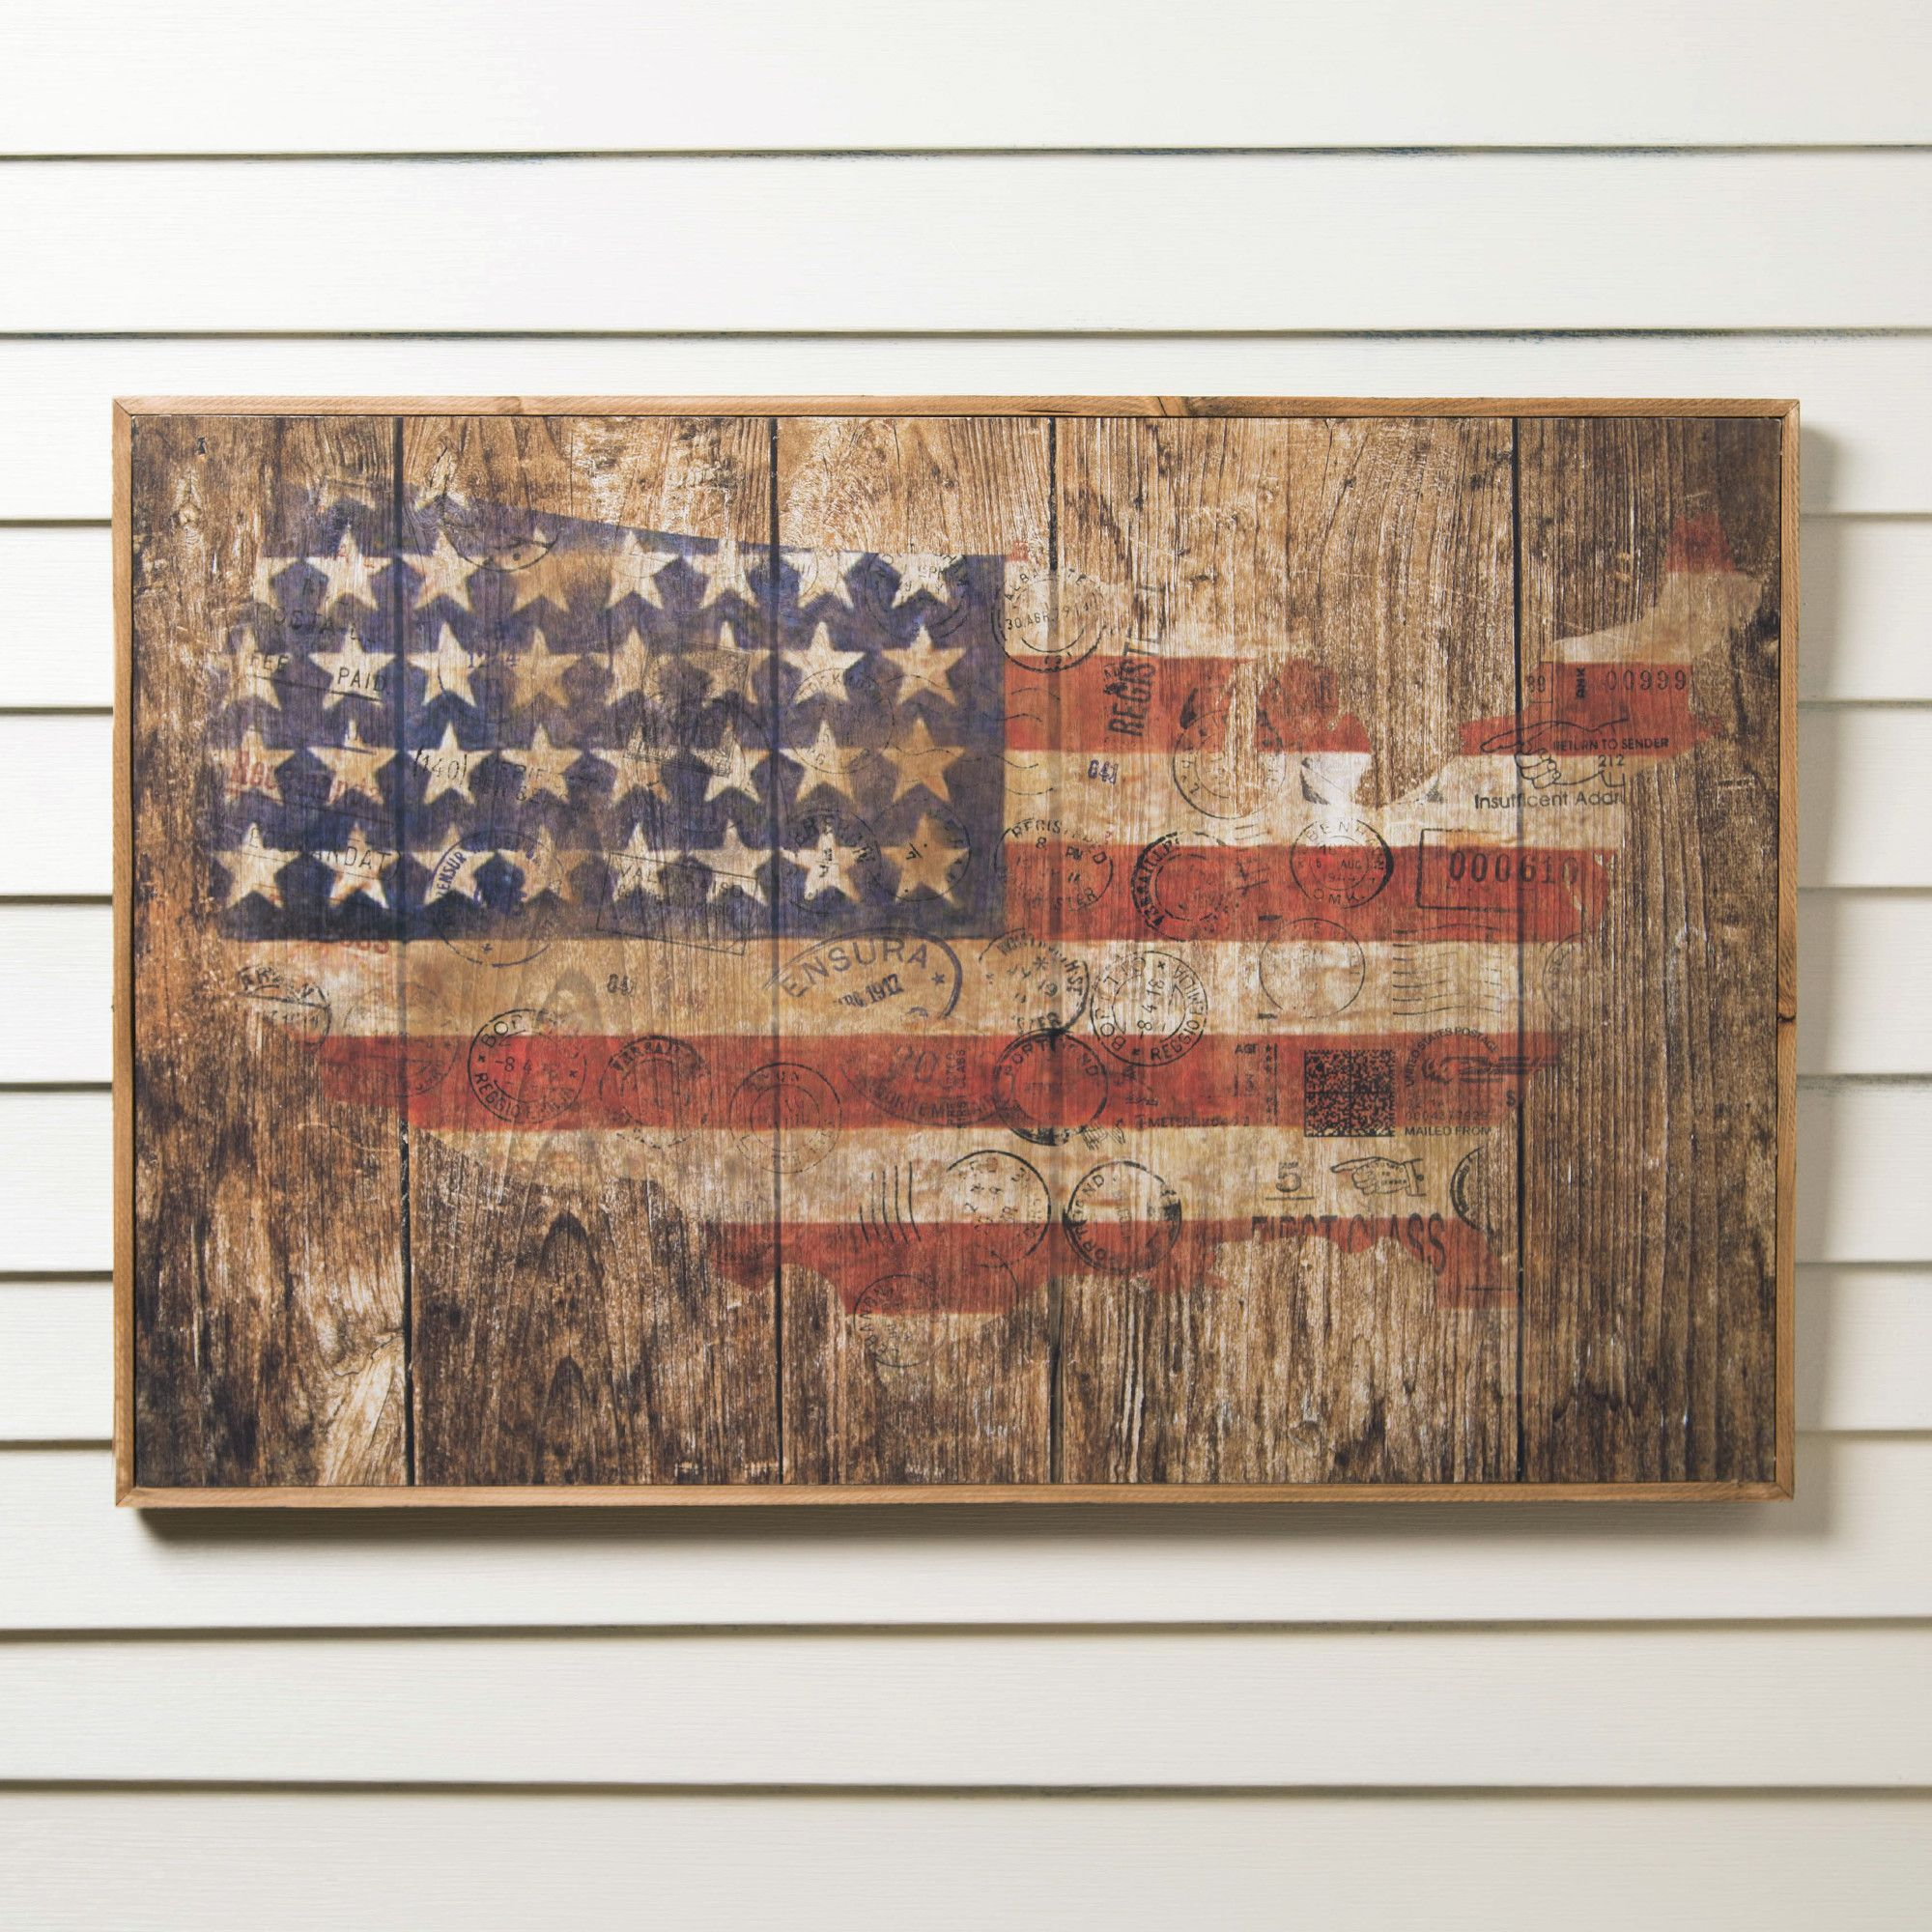 Birch Lane American Flag Wooden Print Rustic Charm Meets